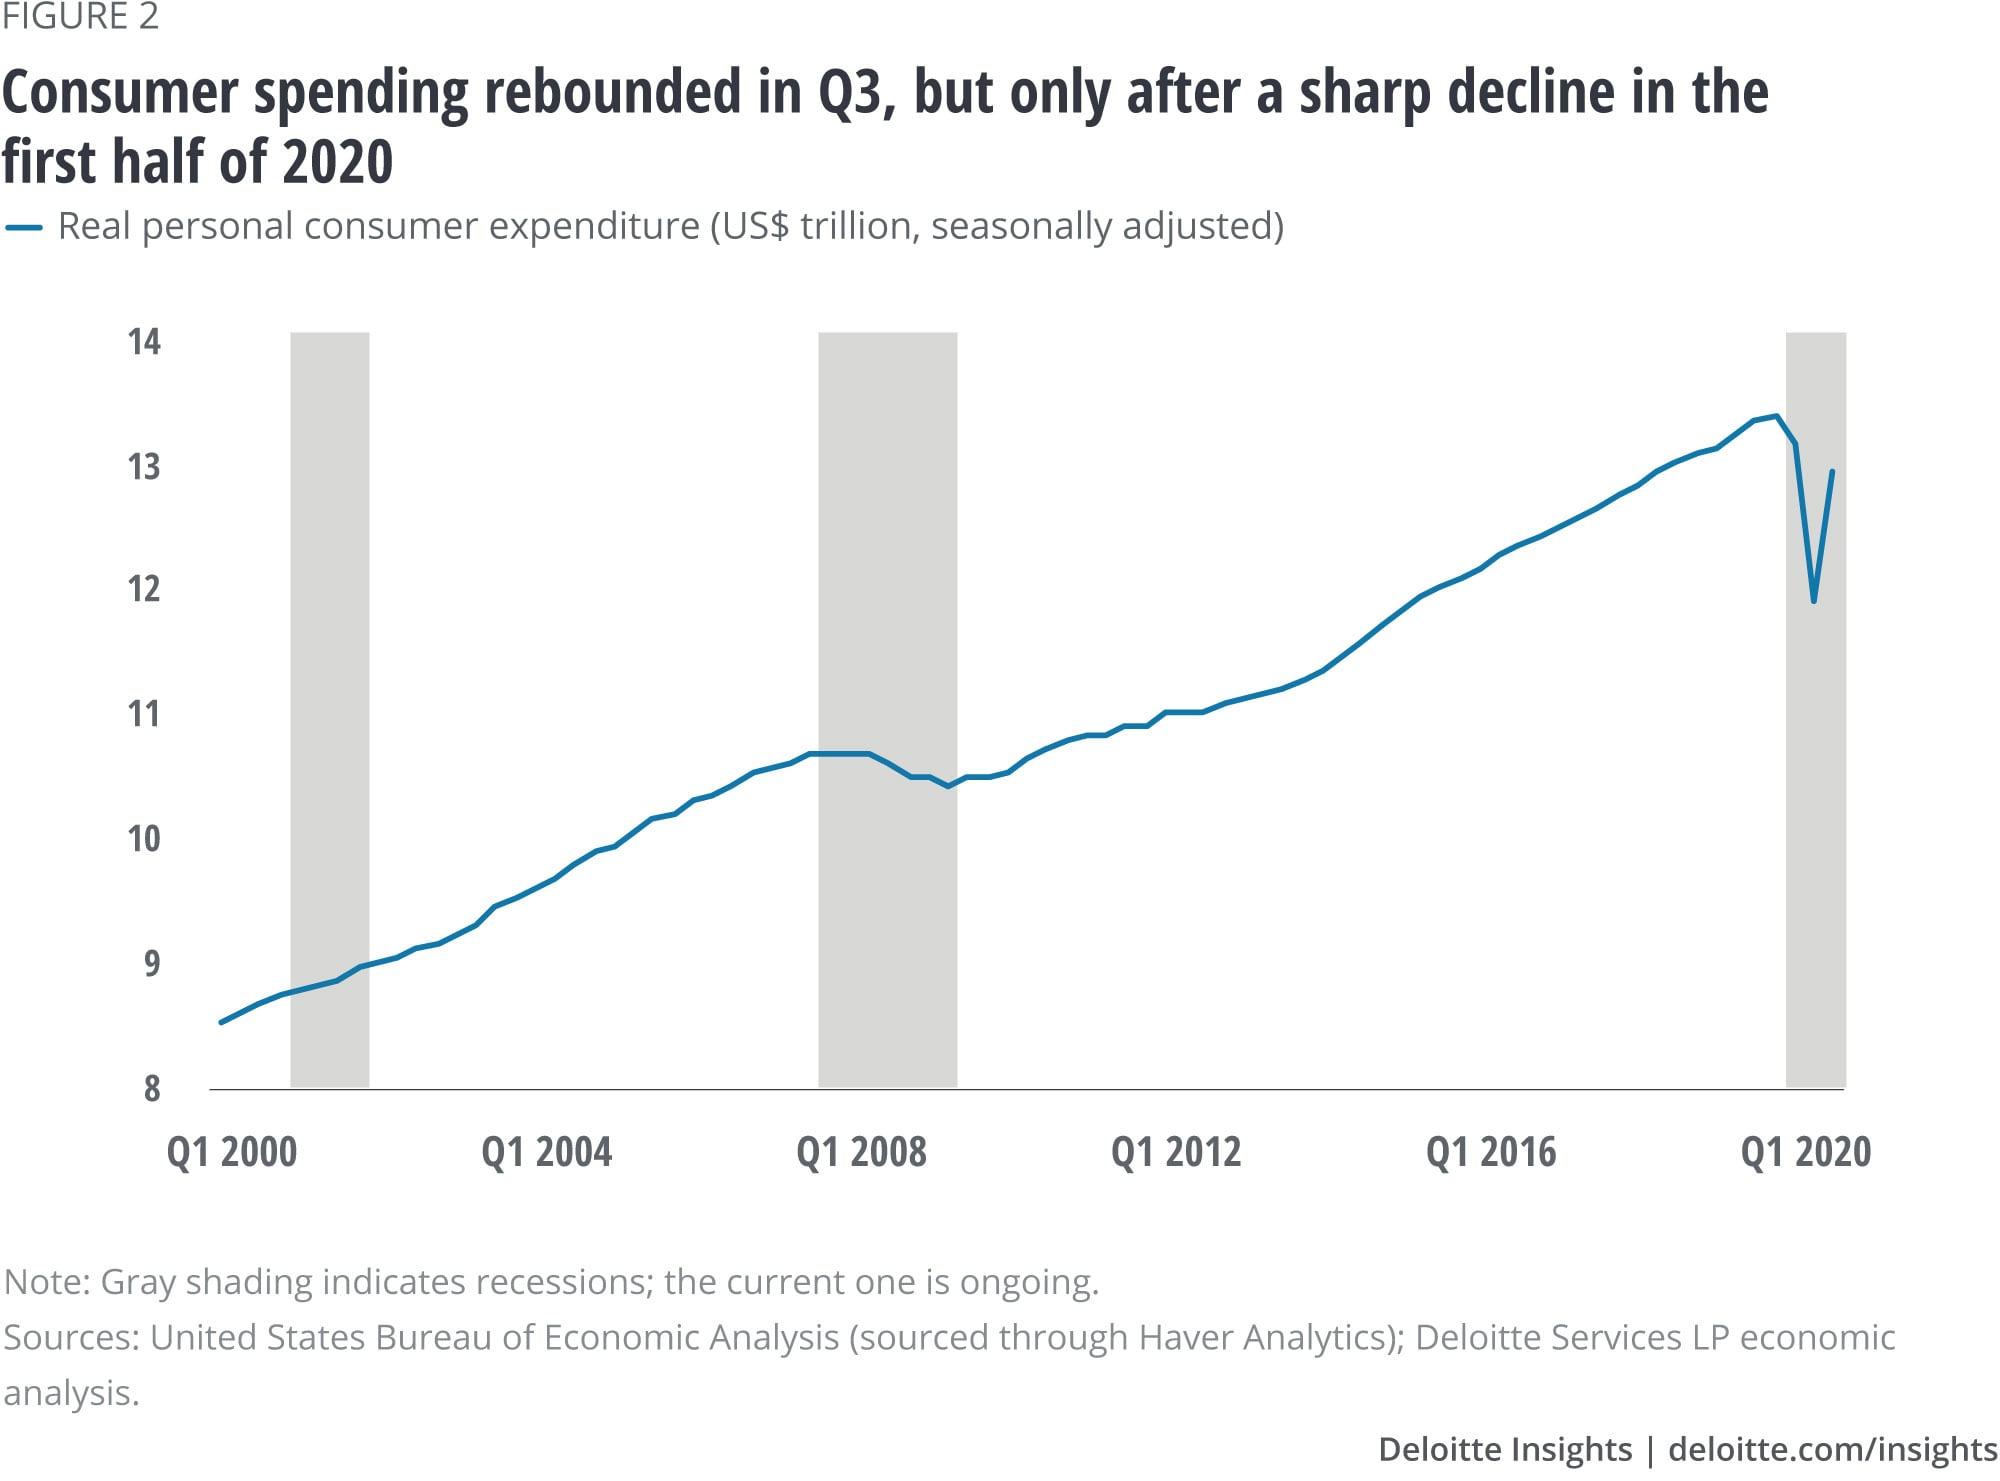 Consumer spending rebounded in Q3, but only after a sharp decline in the first half of 2020